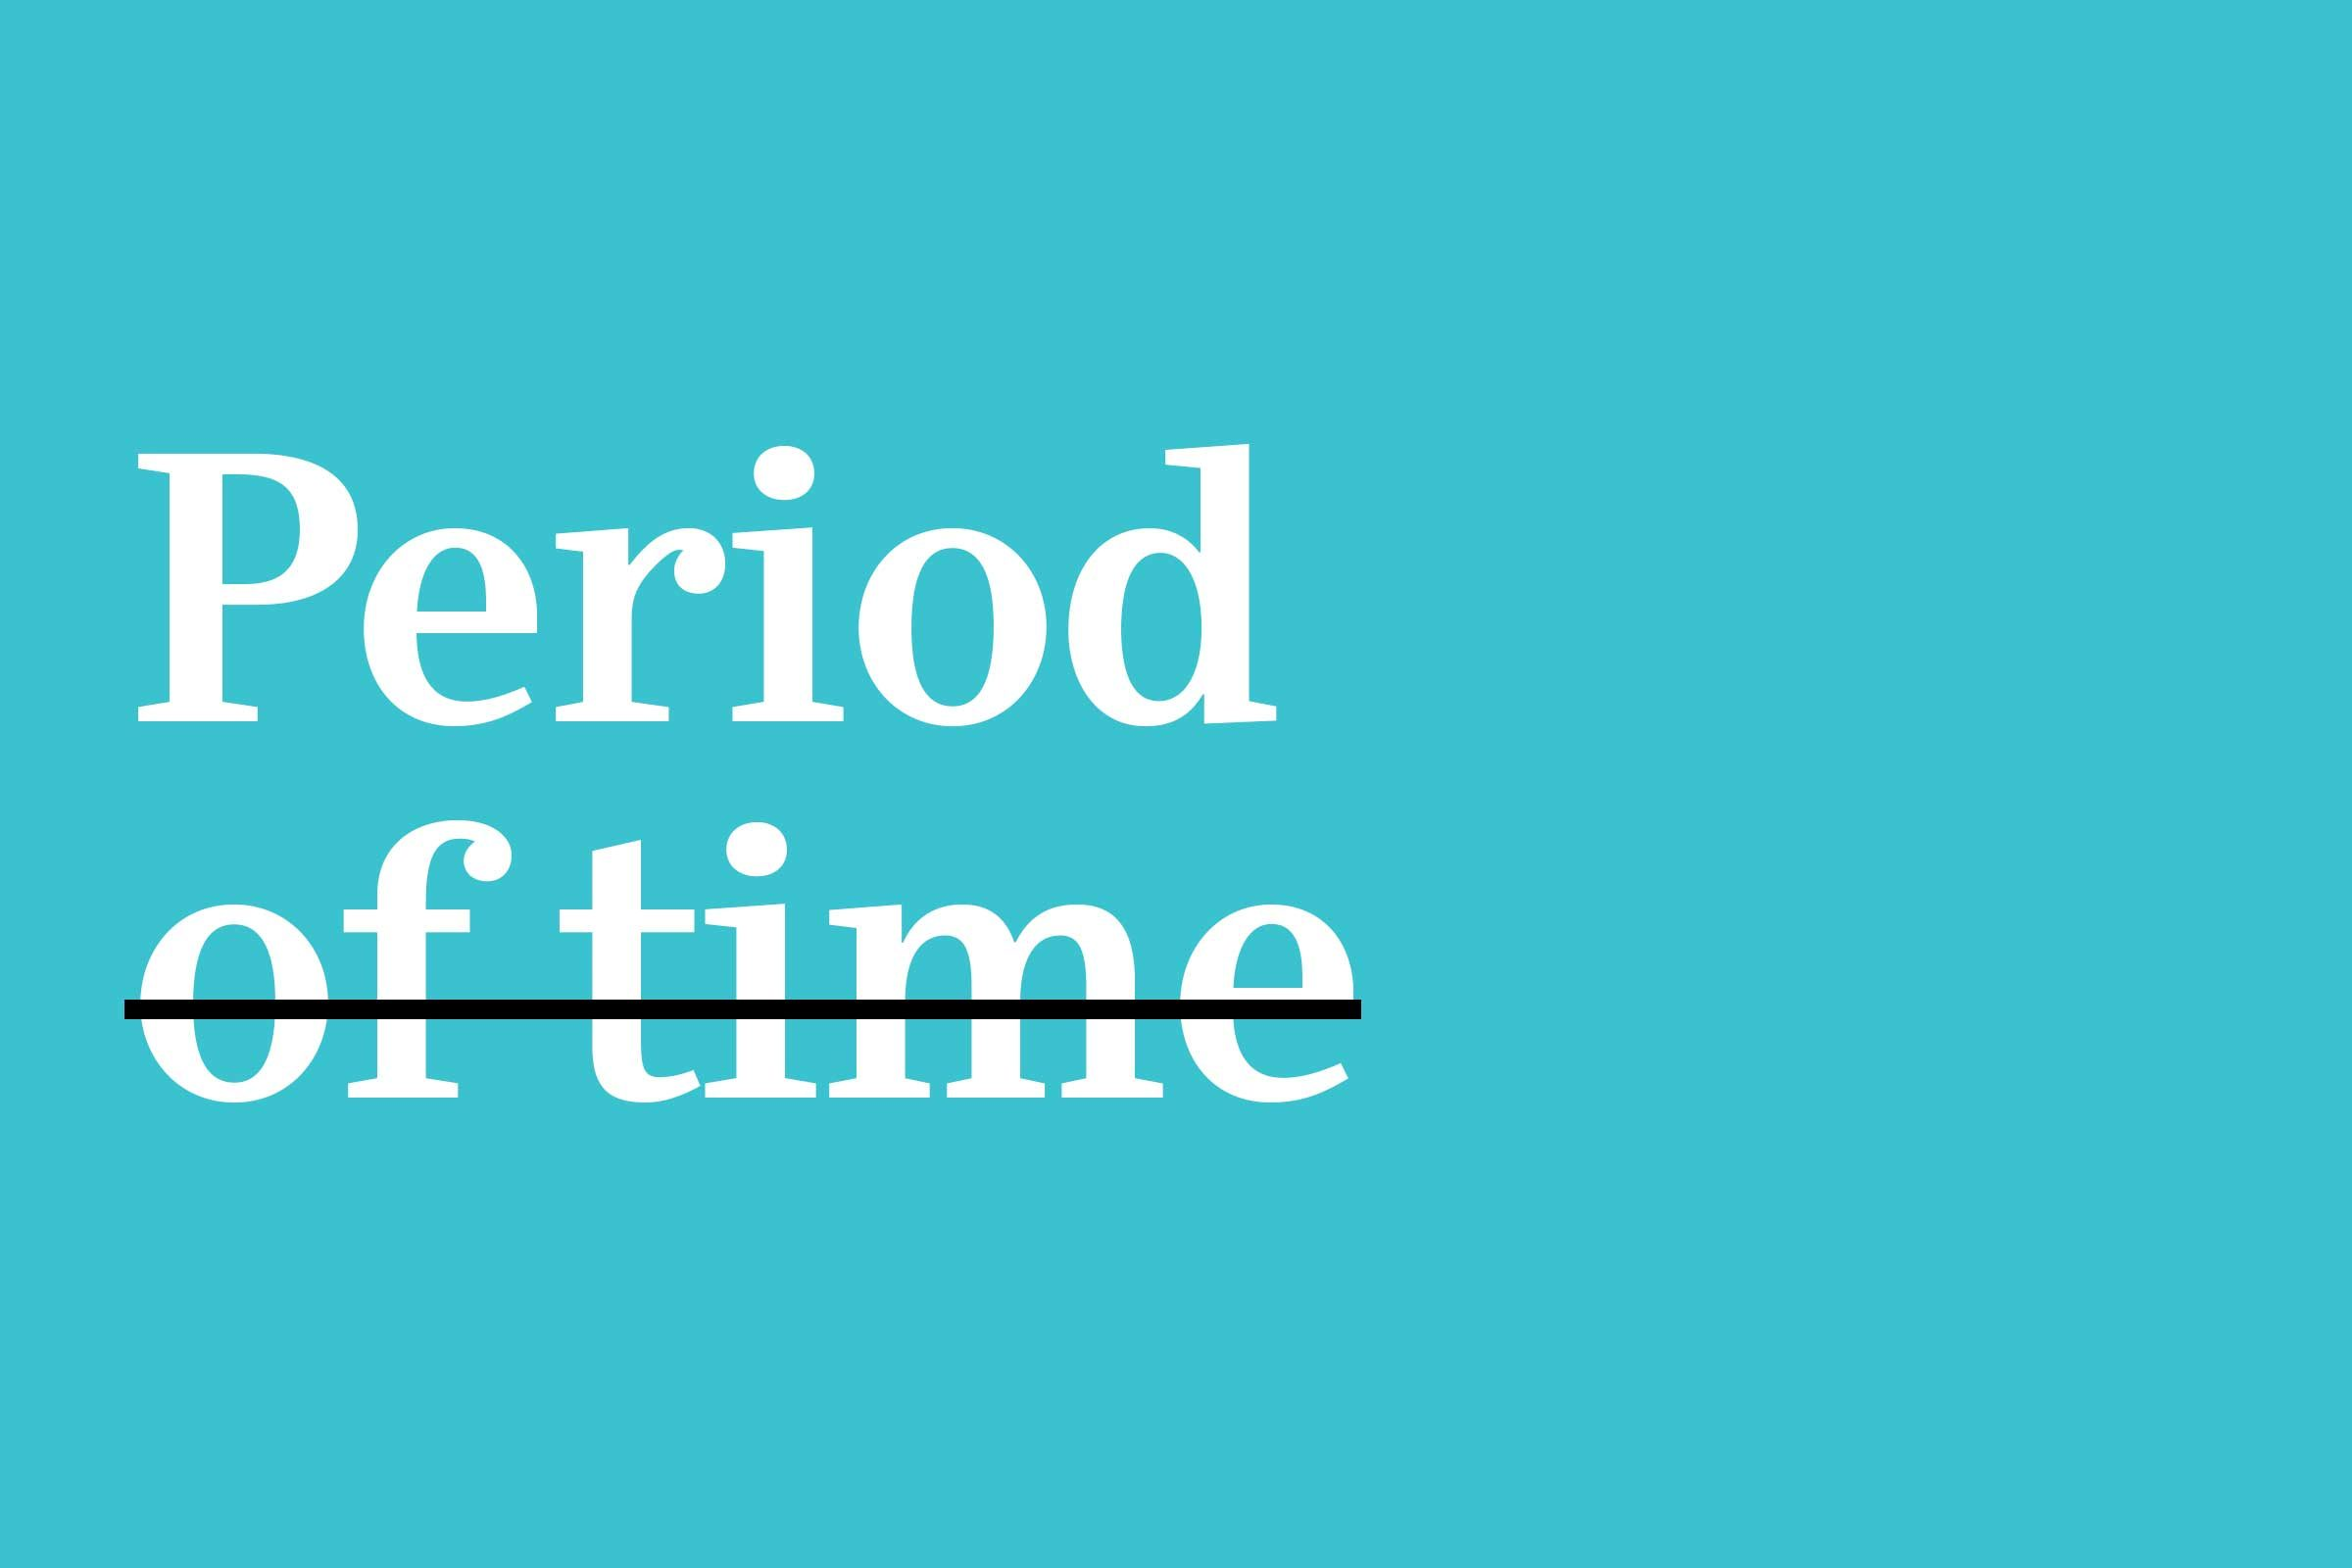 period of time